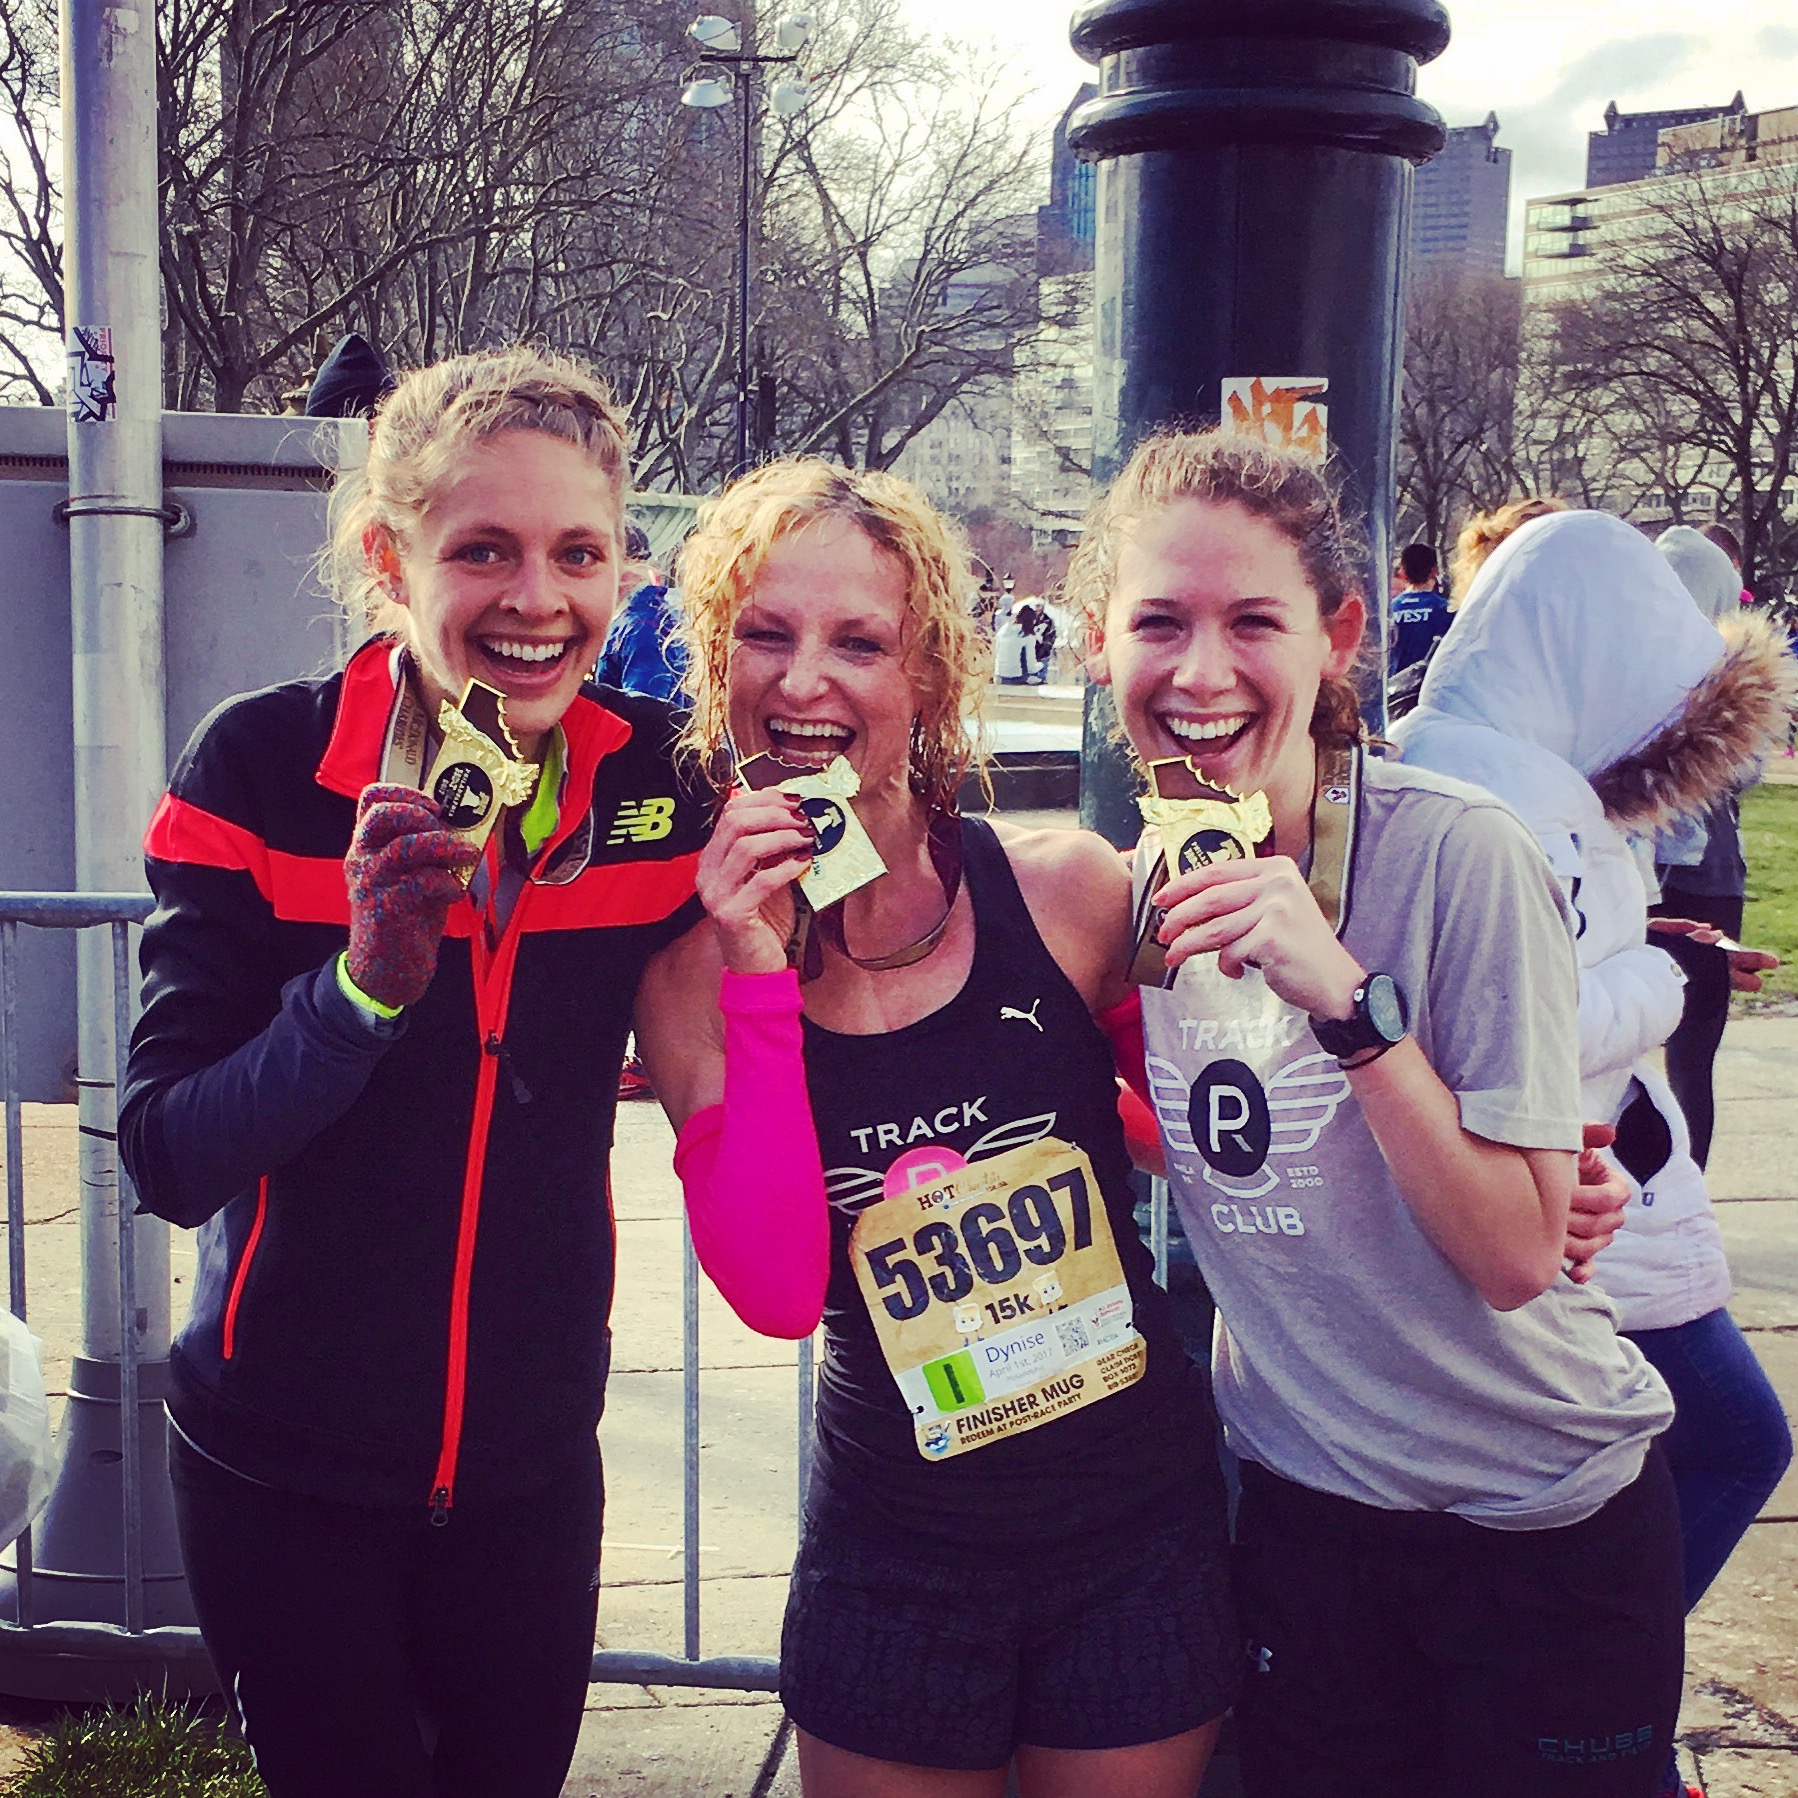 All smiles post-race. I'm the slacker in an overachievers' sandwich ;) My Philadelphia Runner track Club teammate, Sam Roecker (left) won 1st female, 6 overall, and Kylie Pearse (right) won 2nd.